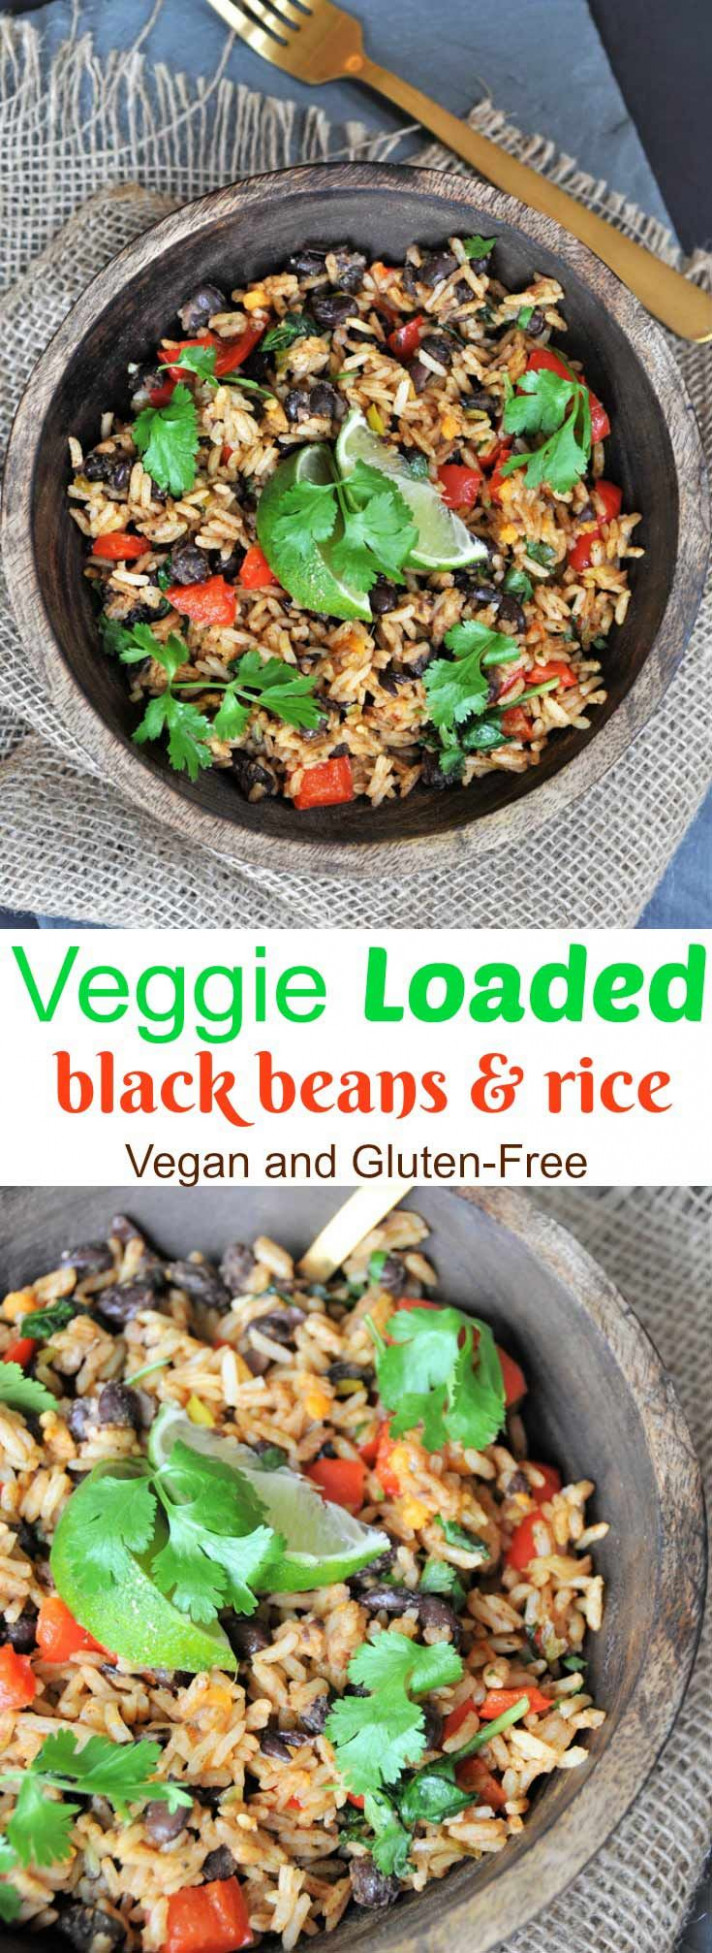 Veggie loaded black beans and rice | Recipe | Food ..